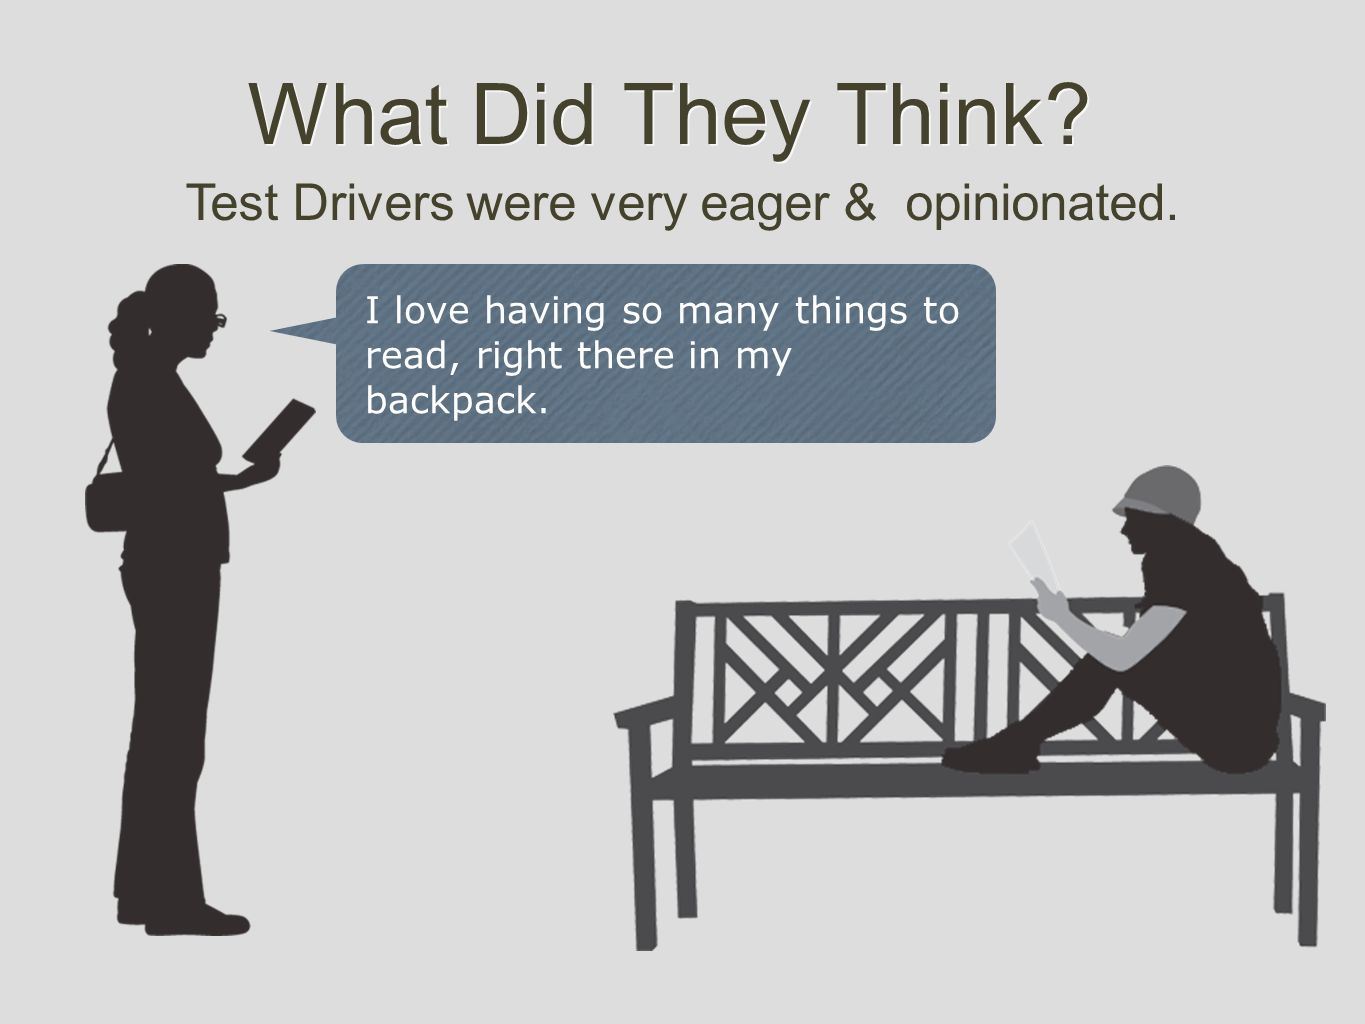 What Did They Think. Test Drivers were very eager & opinionated.